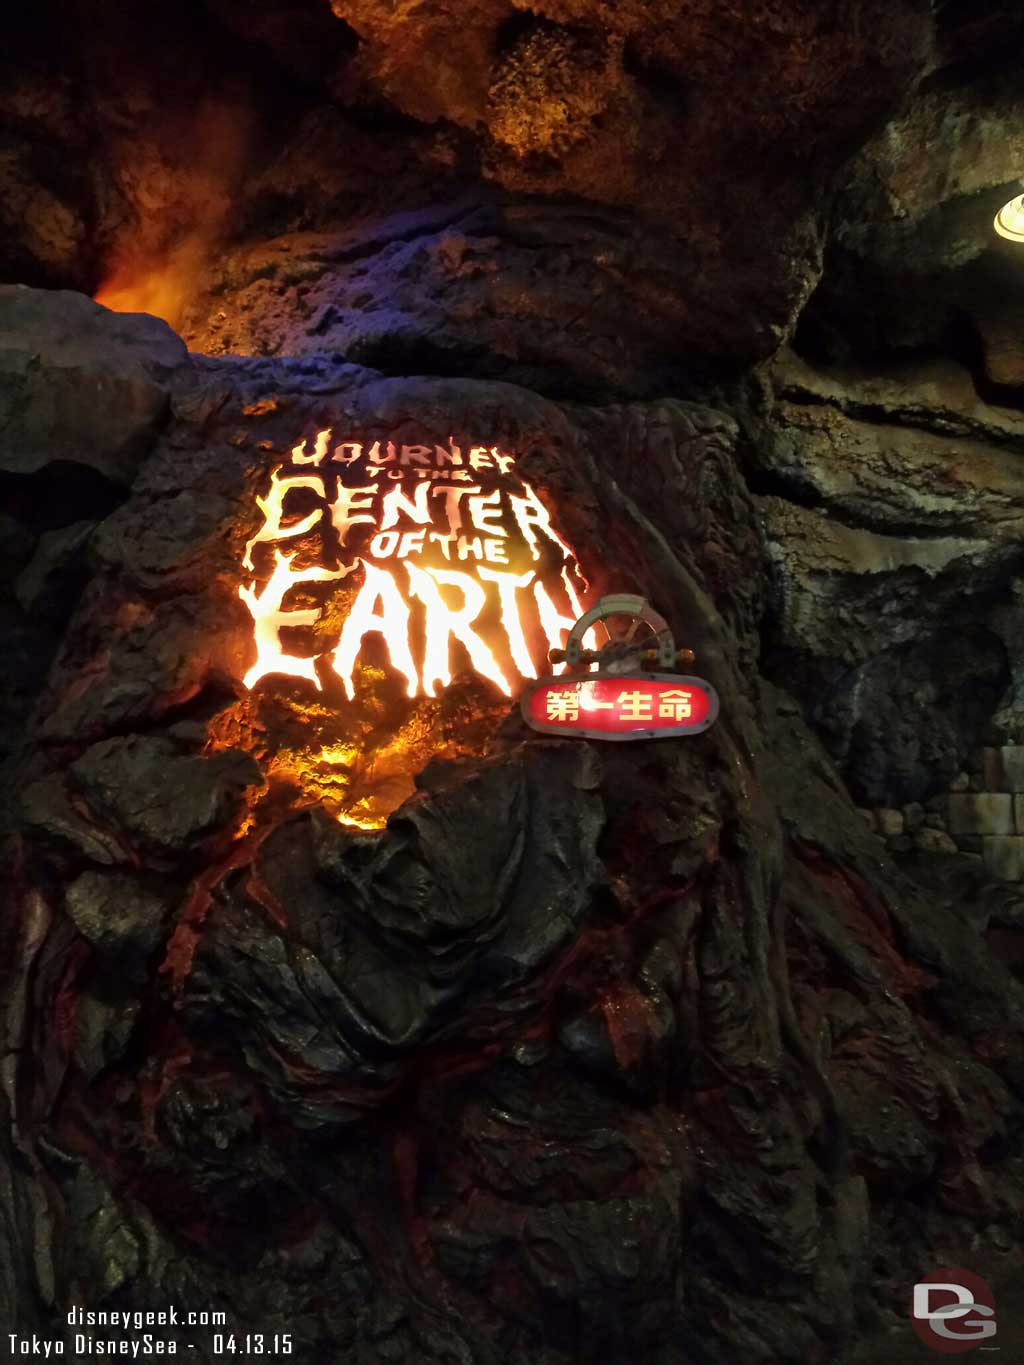 Journey to the Center of the Earth entrance sign #TokyoDisneySea